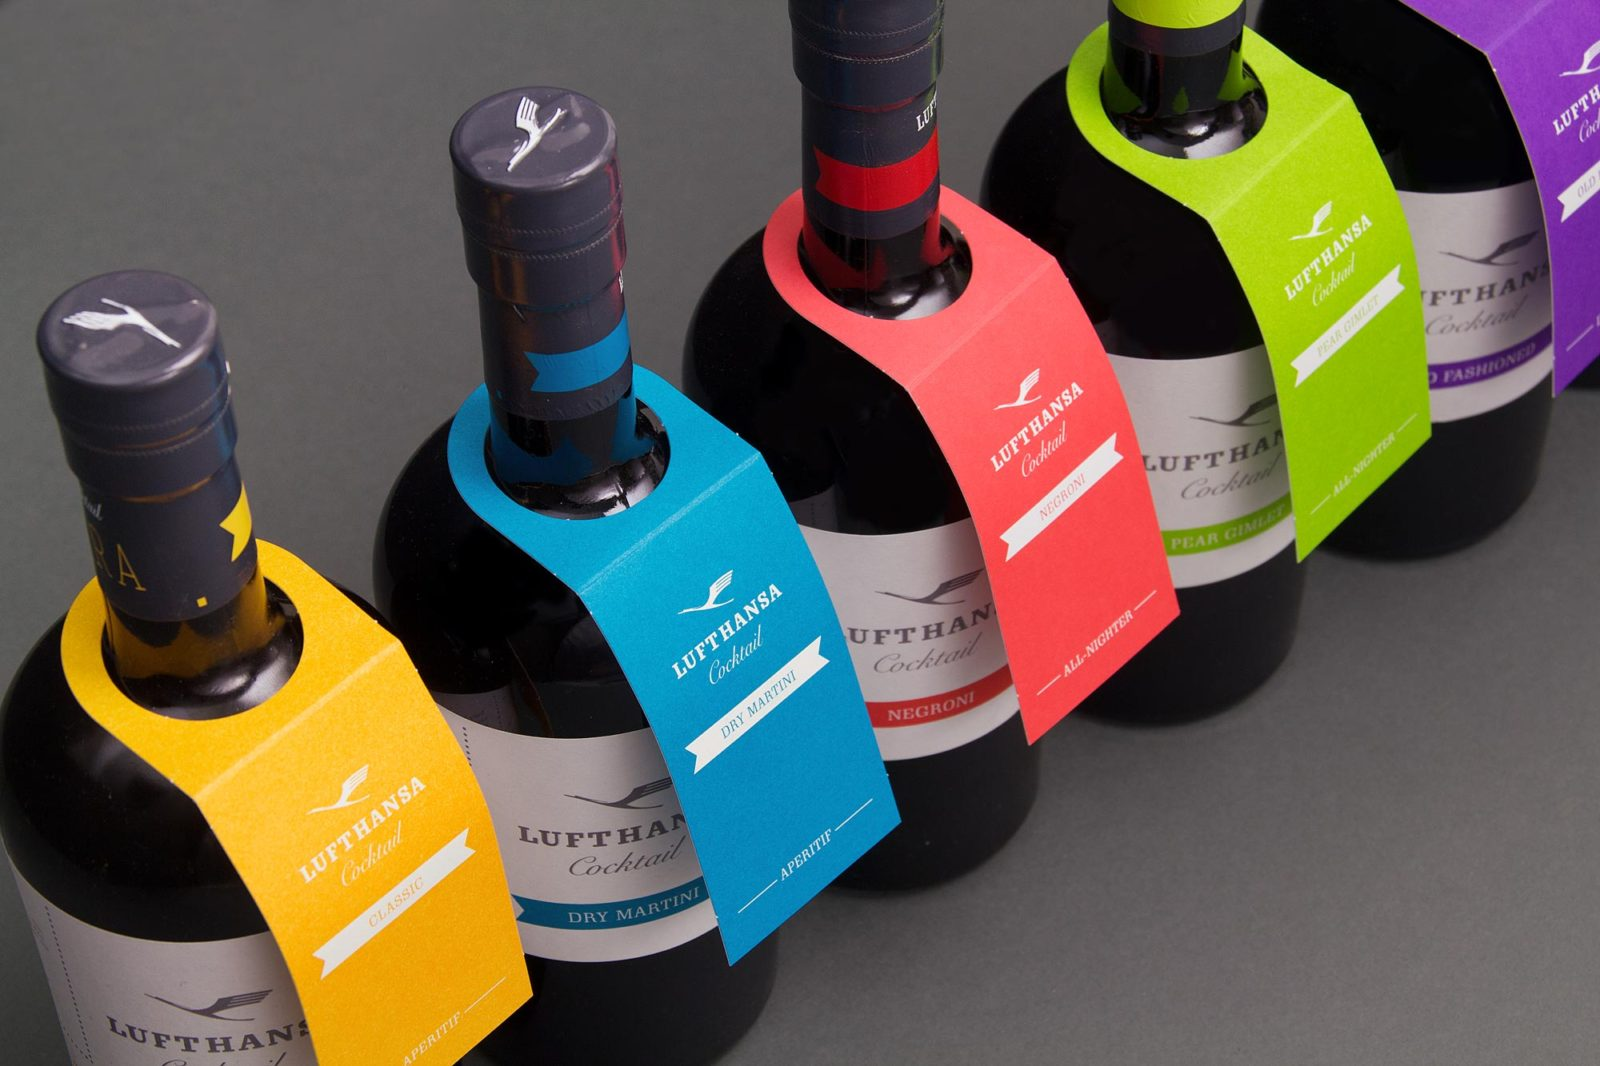 Editienne Grafikdesign - Kommunikationsdesign Berlin- Packaging Design- Spreewood Distillers- Lufthansa Cocktail 21